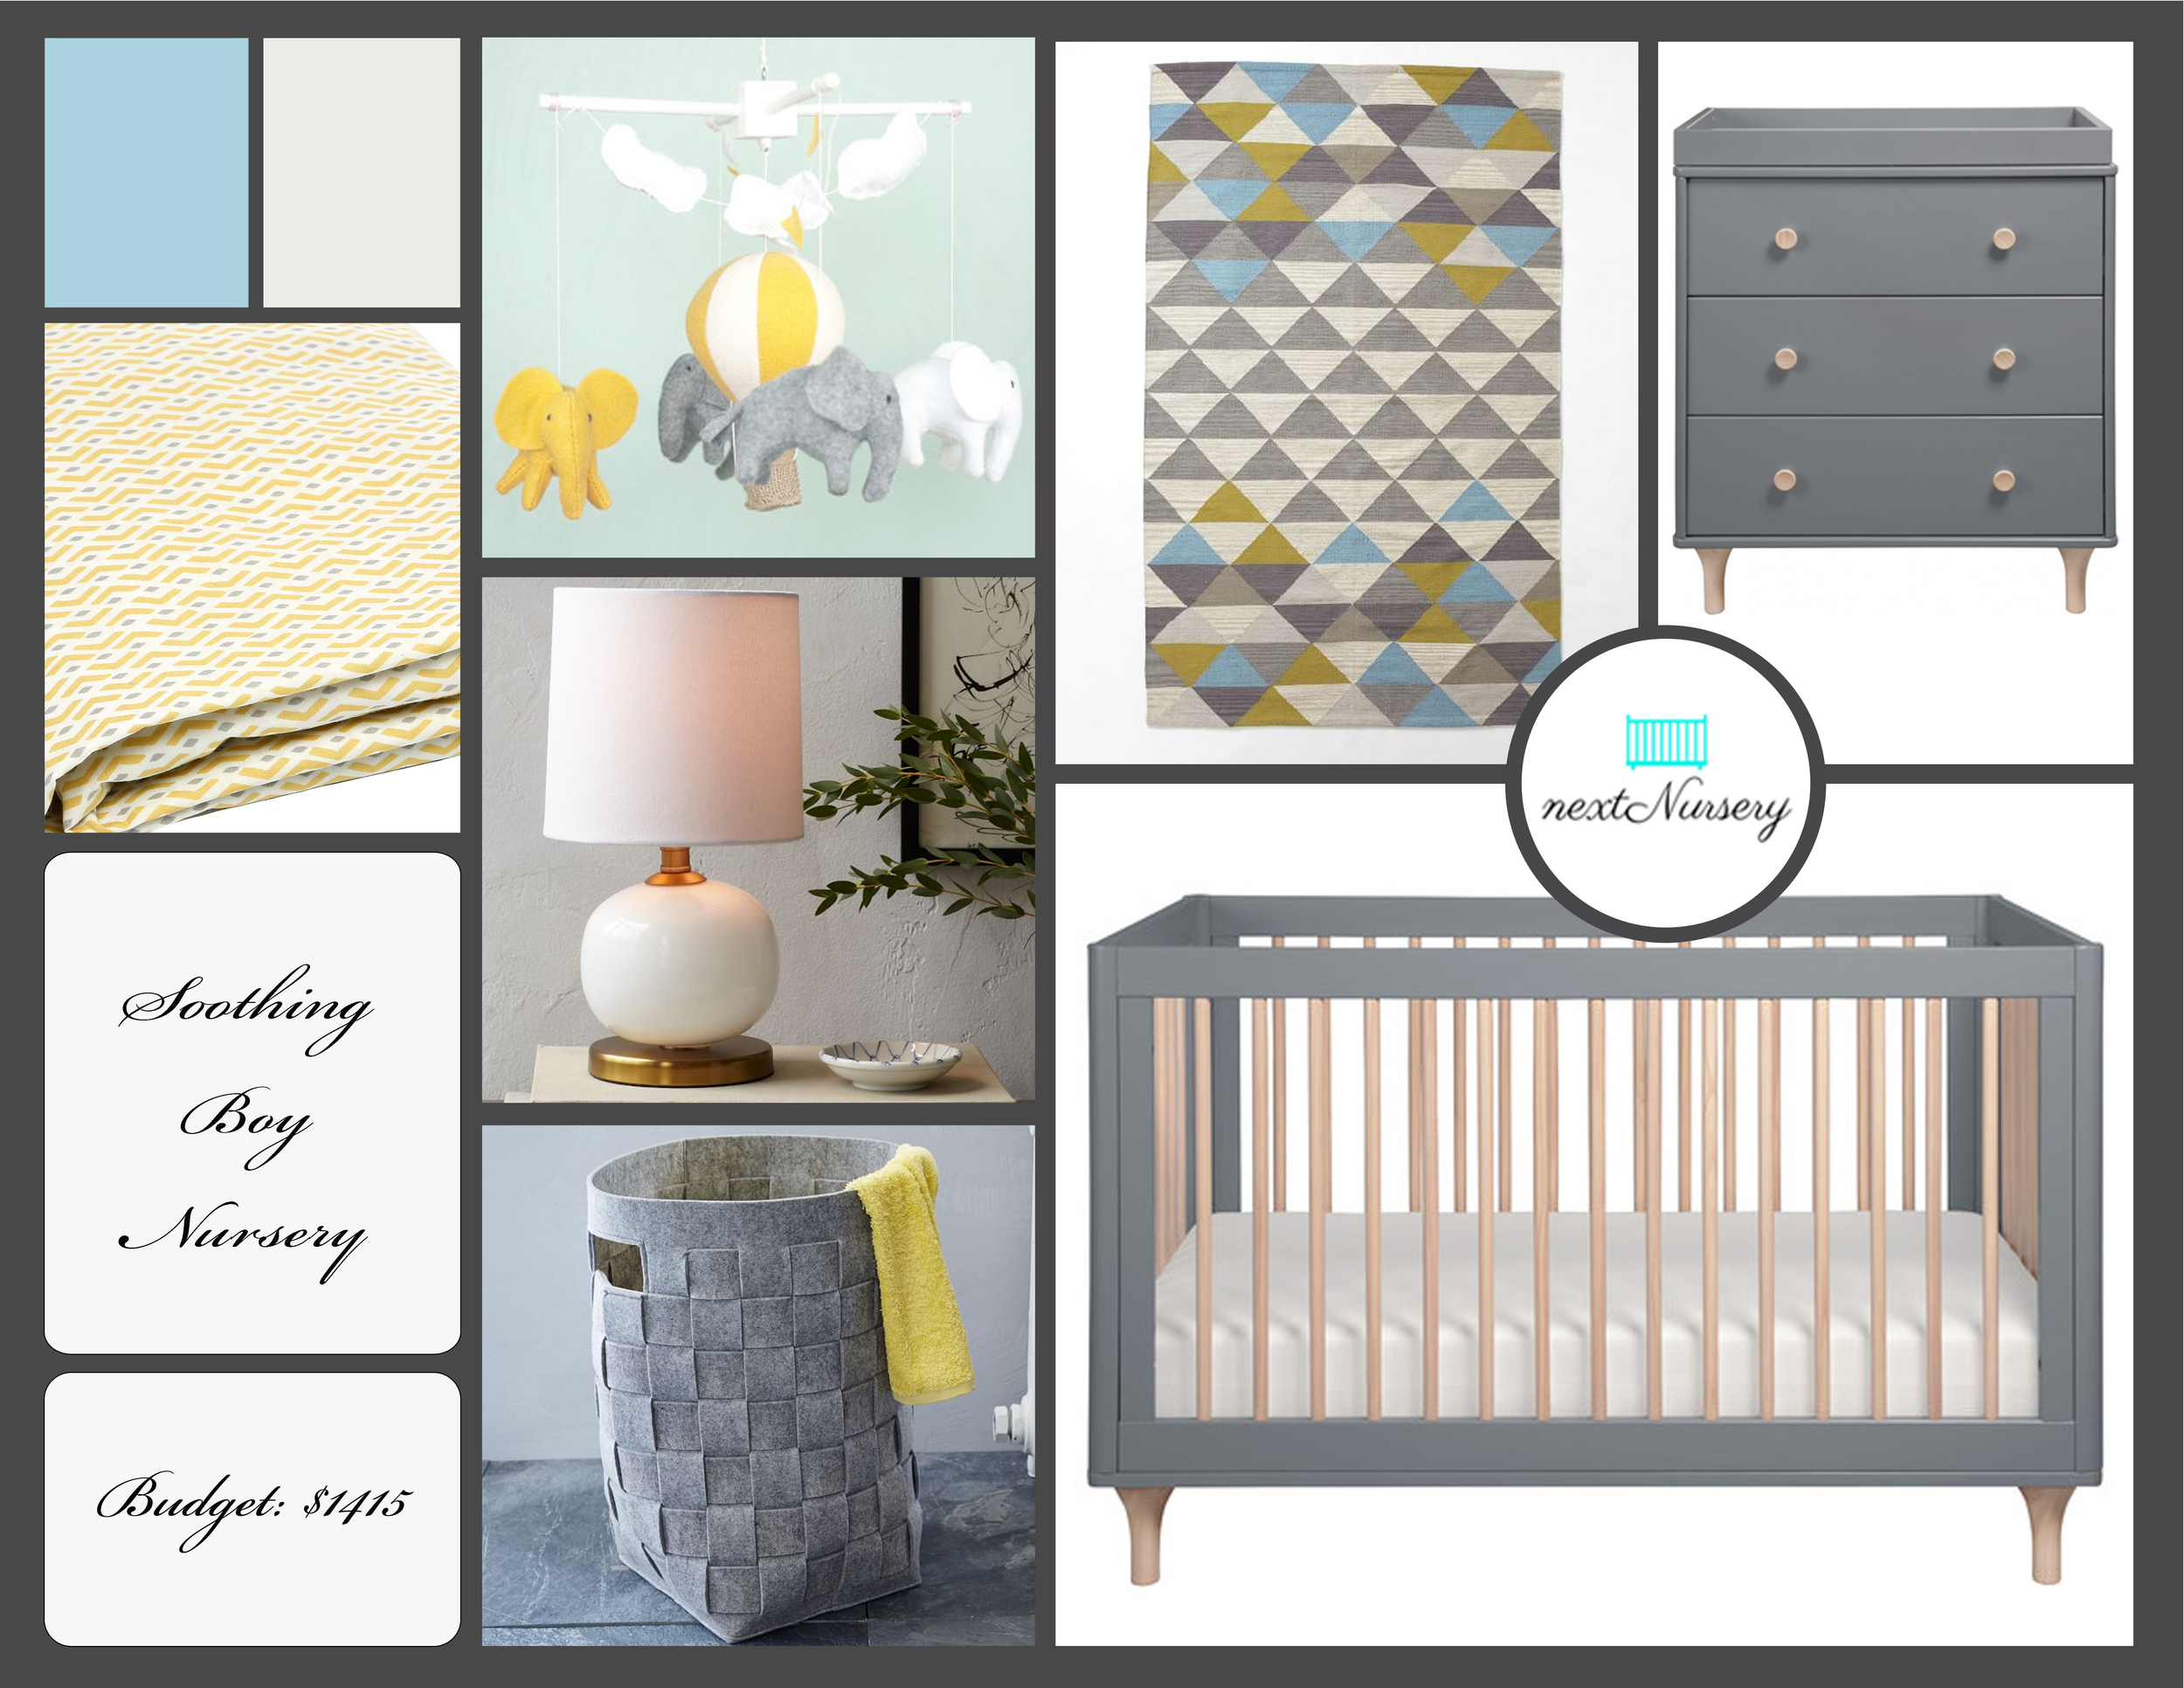 MODERN BOY NURSERY     A modern and bright baby boy nursery that will fit into the decor of any home.  Natural accents provides a soothing quality to this design.